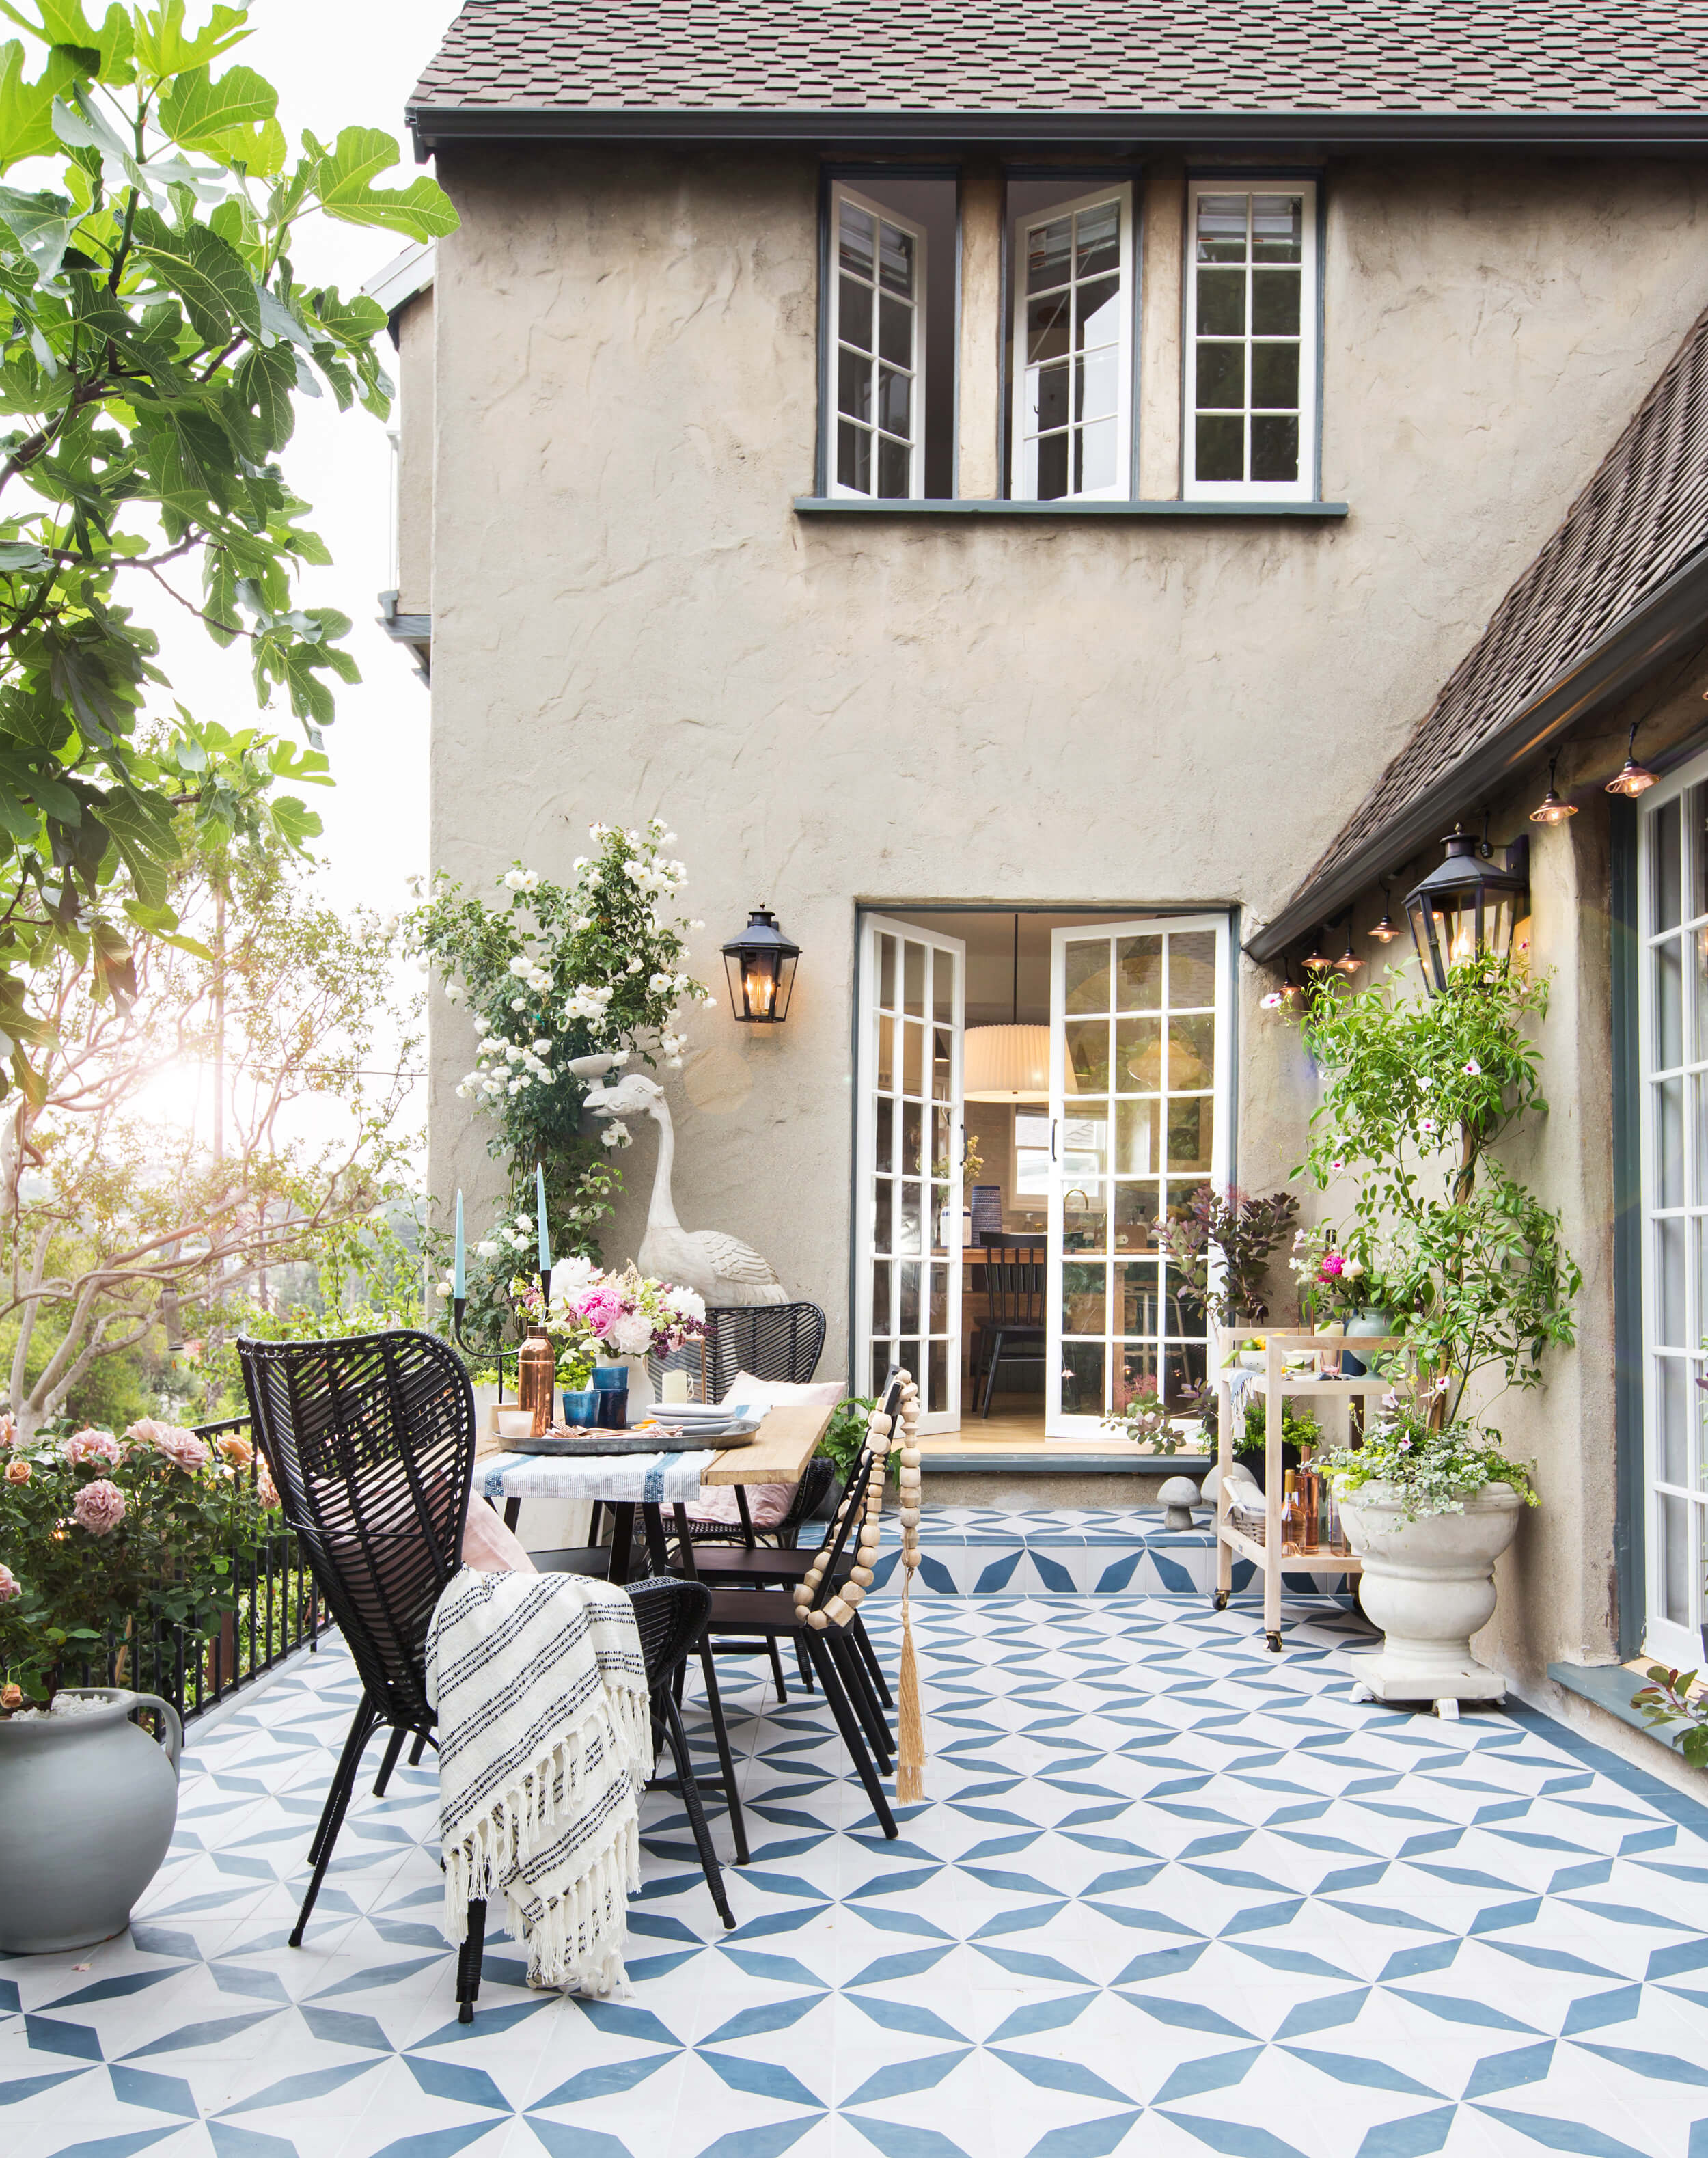 Emily Henderson's outdoor dining area in her California home.